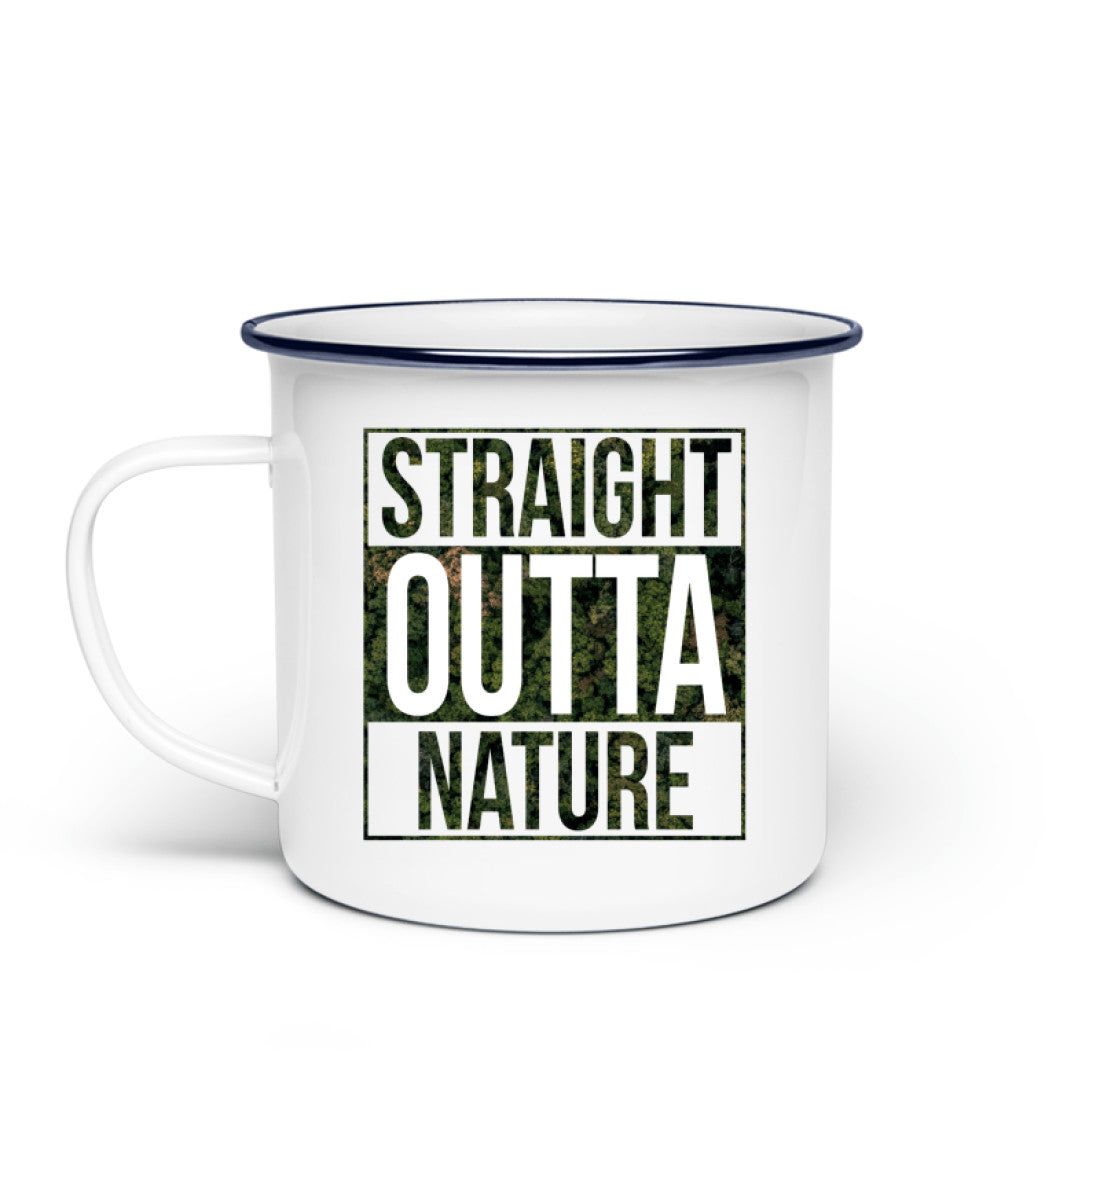 Straight outta Nature Enamel mug